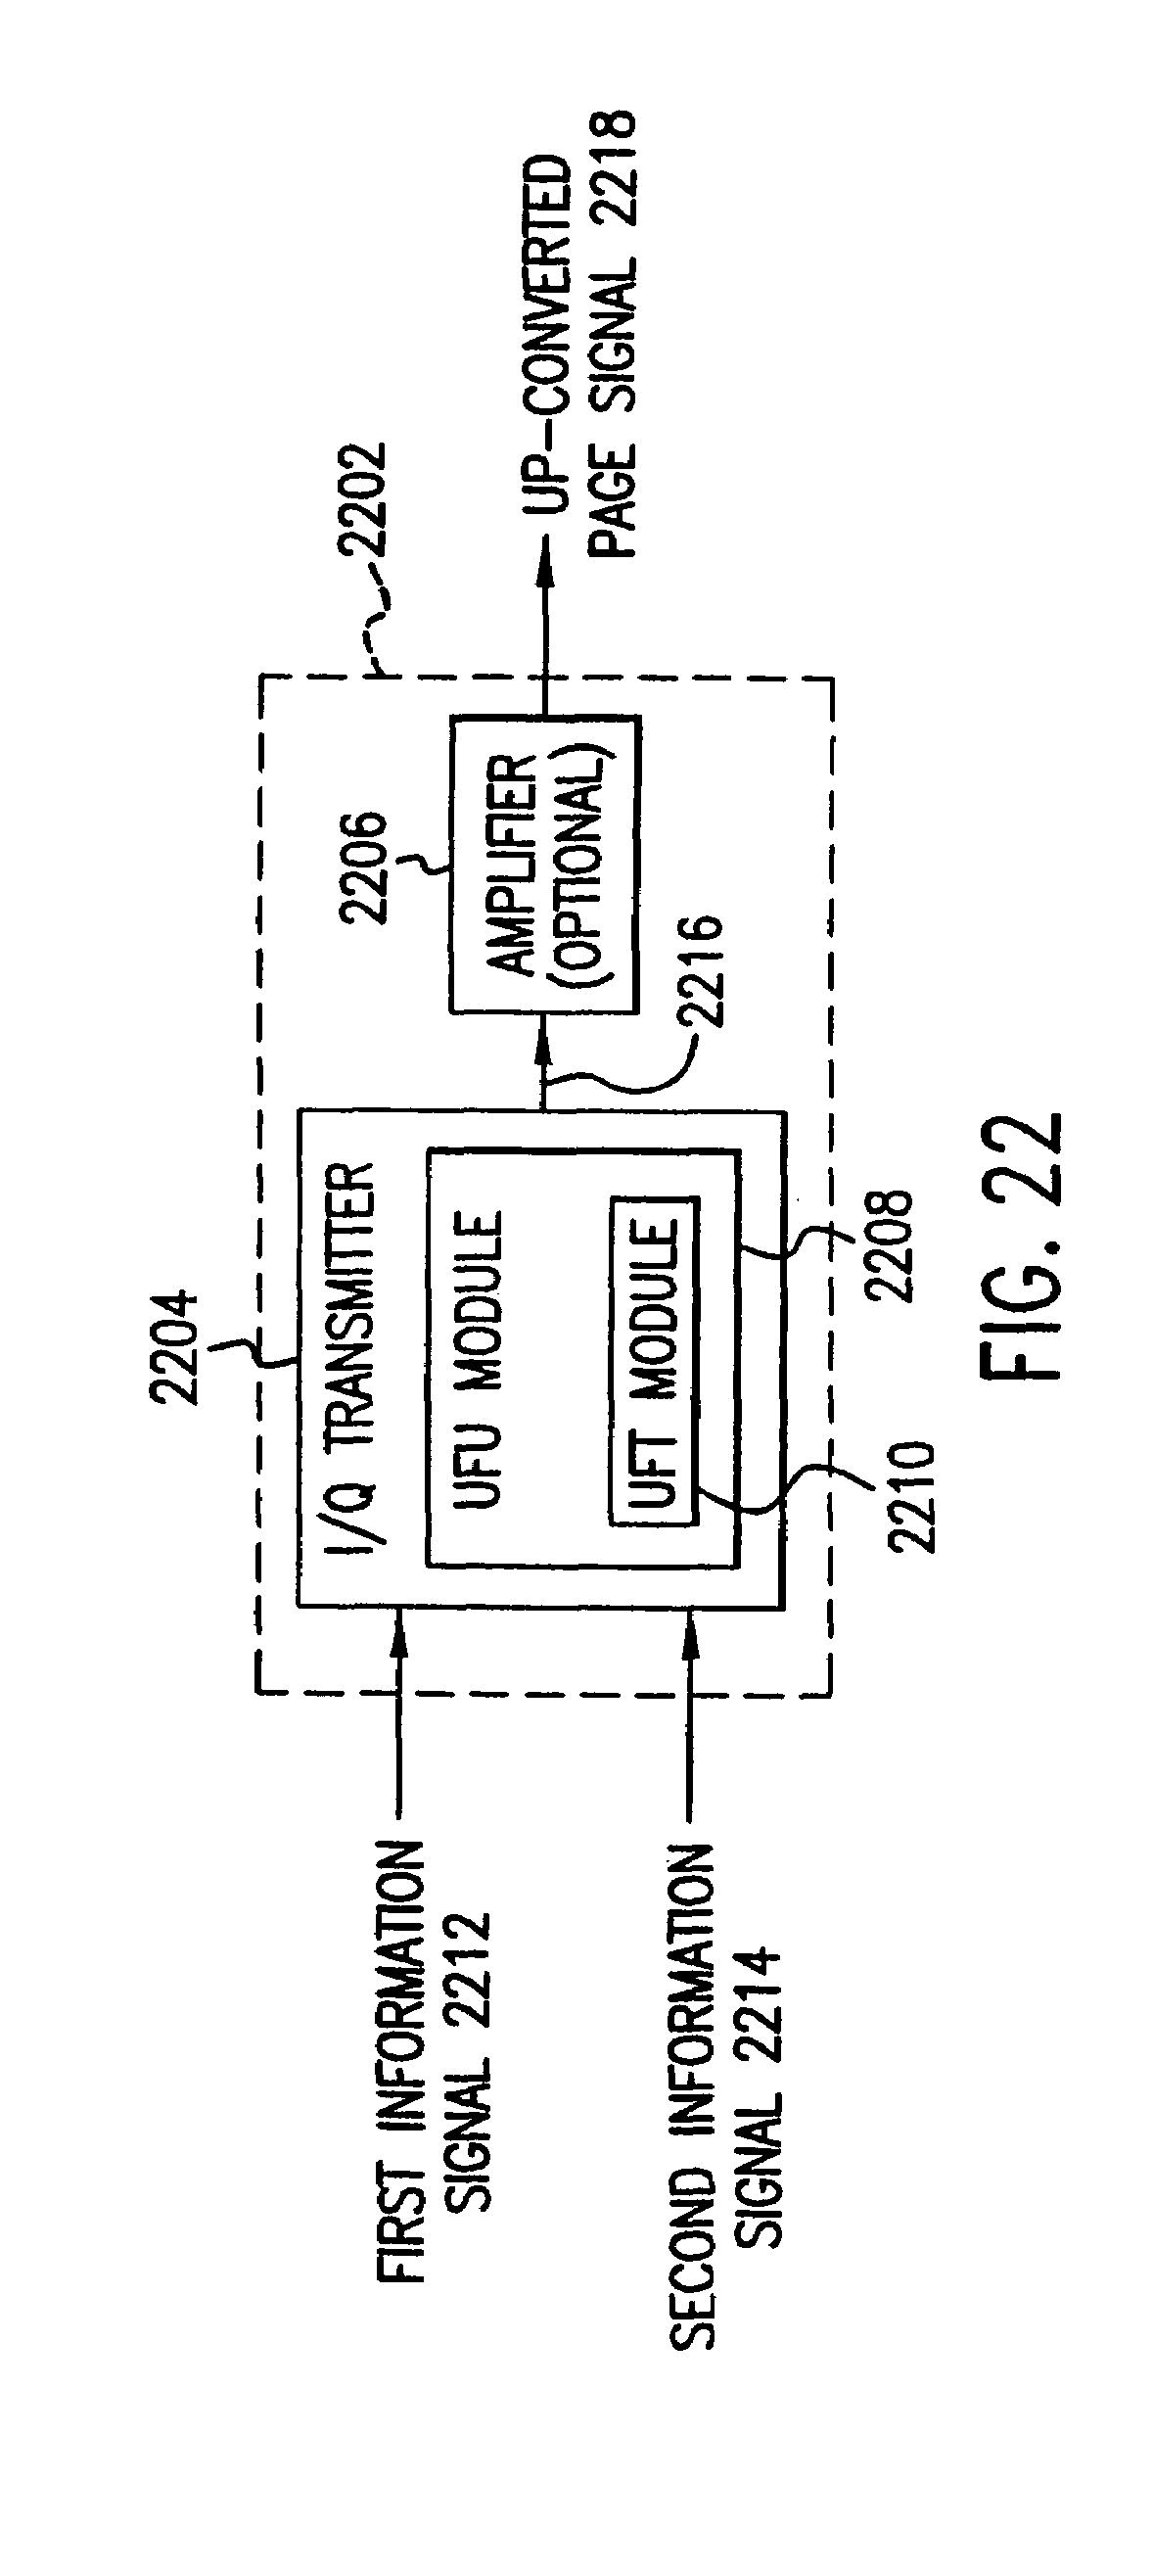 Photoconductive Cells Electronic Circuits And Diagramelectronics